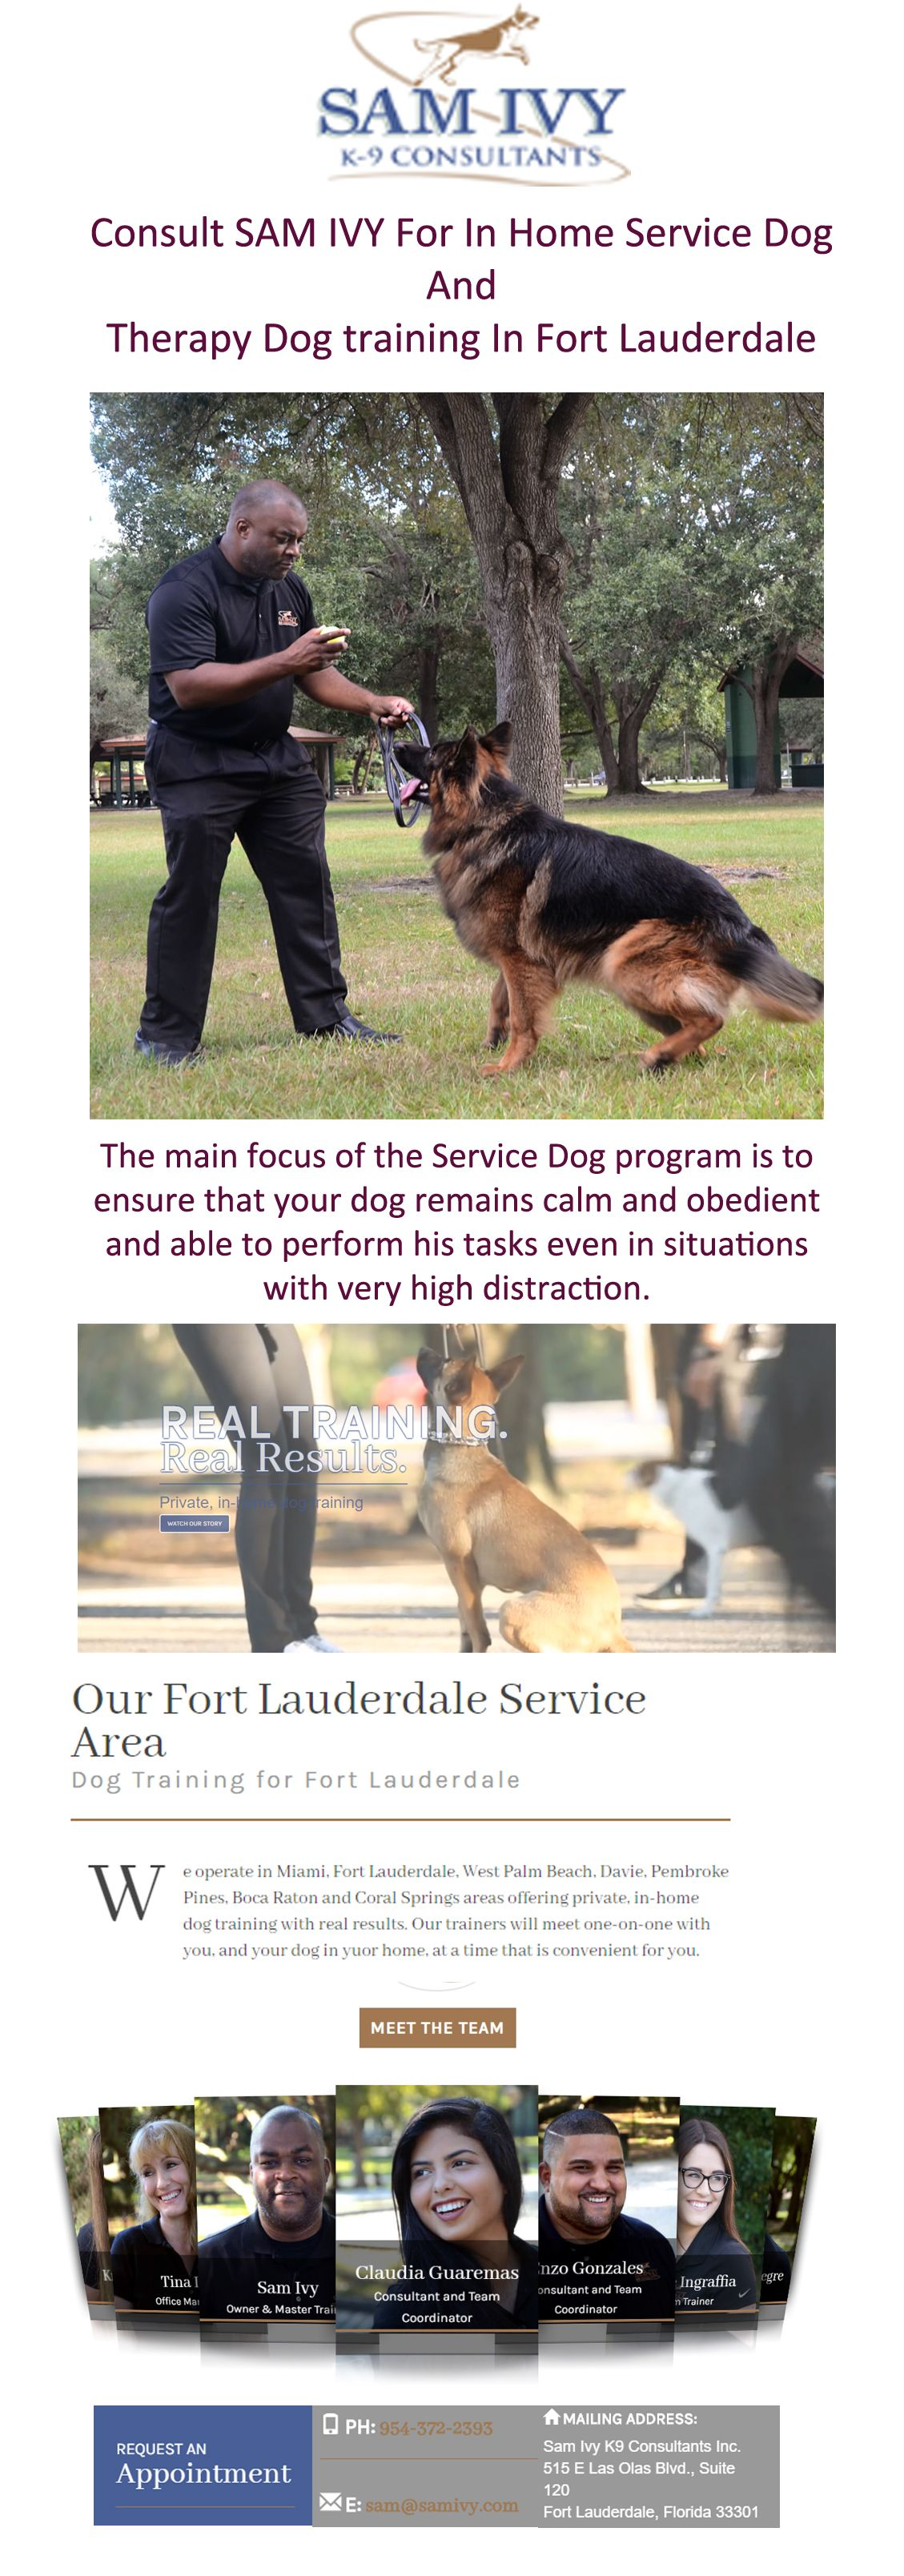 At Samivy Our Main Focus Of The Service Dog Program Is To Ensure